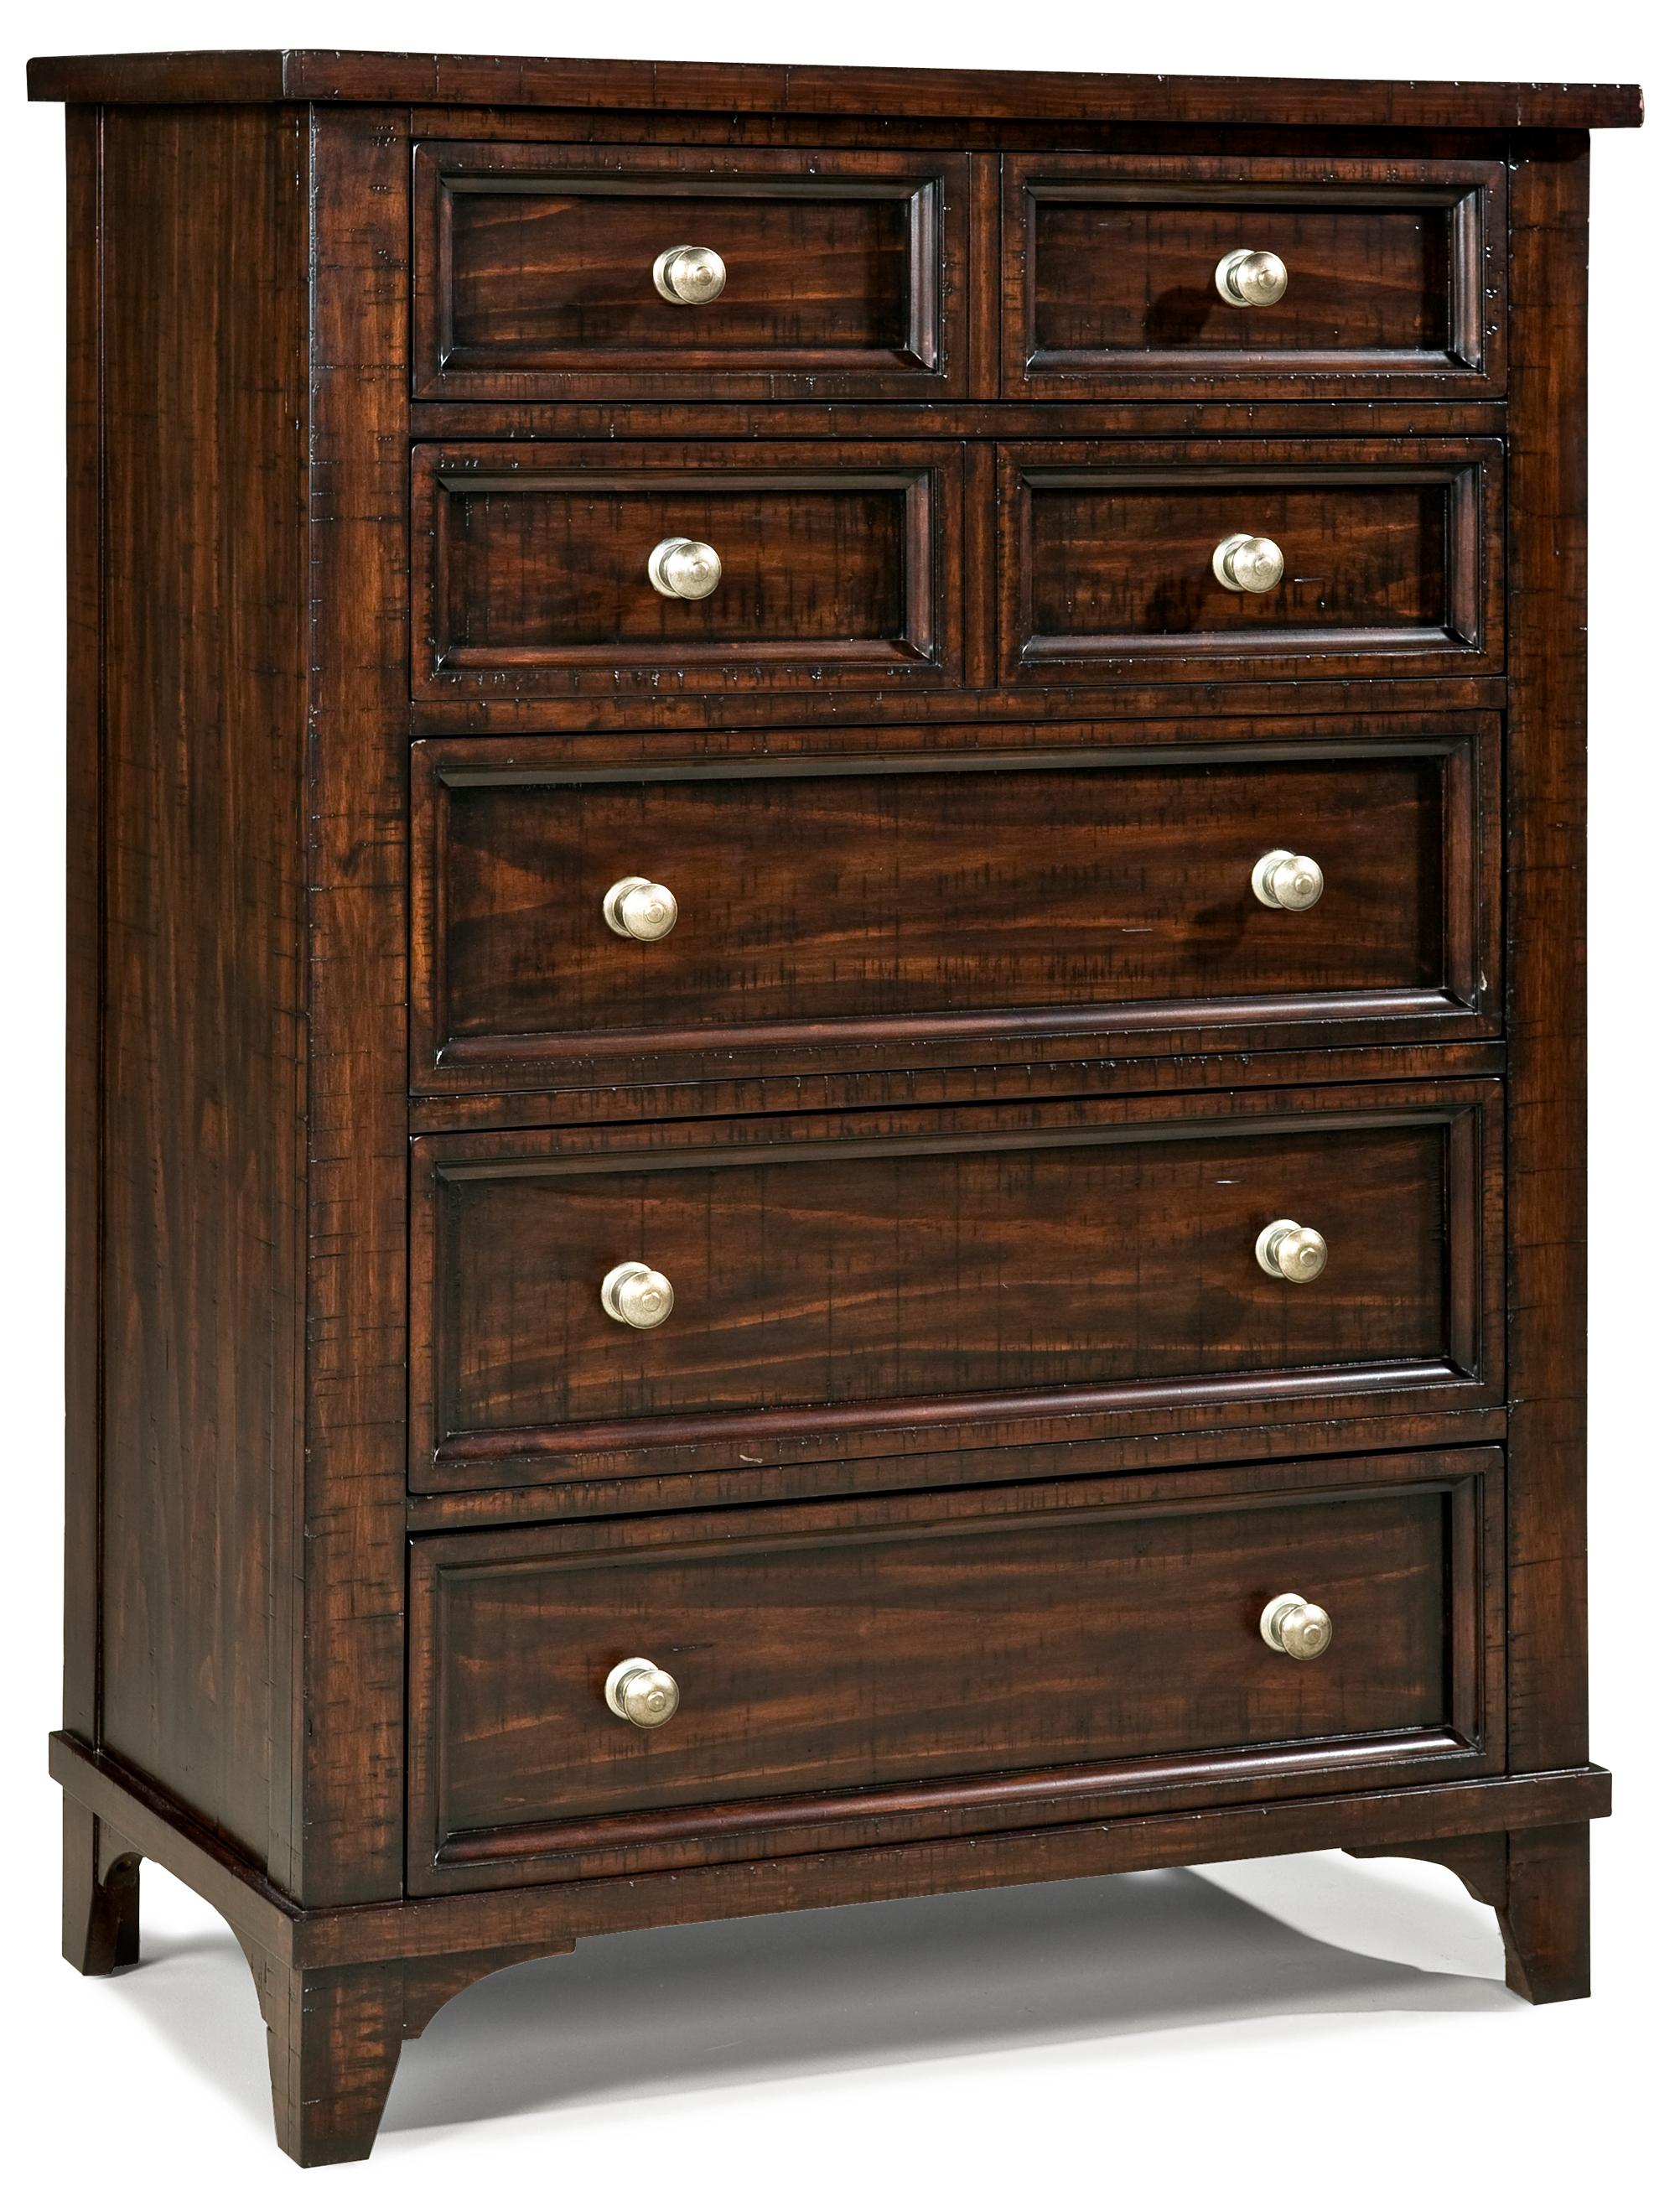 Intercon Hayden 5 Drawer Chest  - Item Number: HY-BR-5905-RSE-C